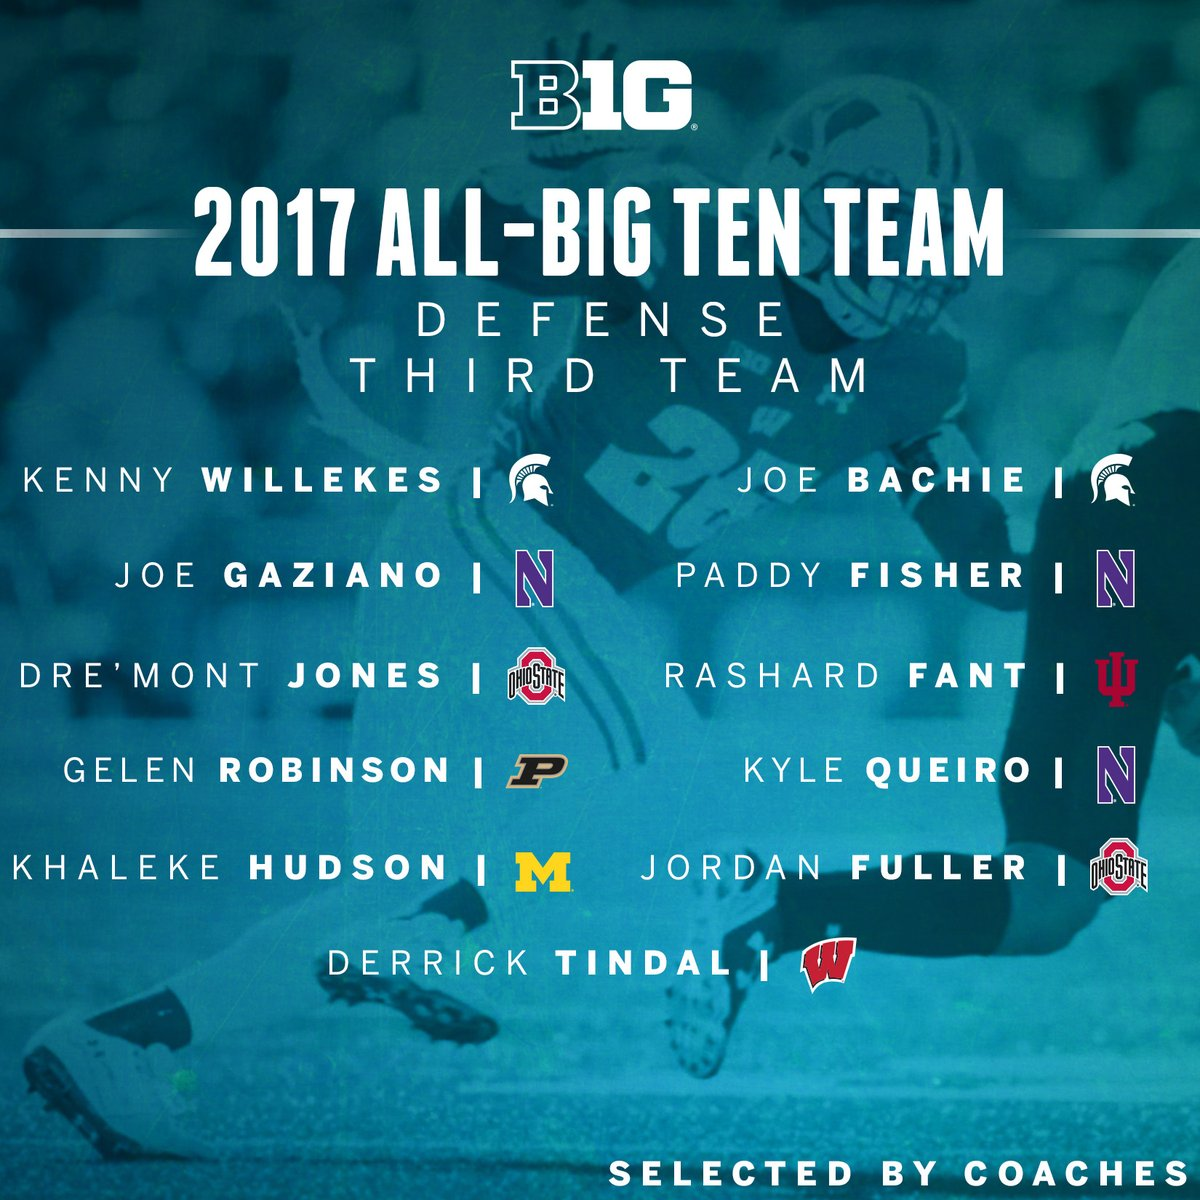 All-Big Ten Defense Third Team, as selected by coaches